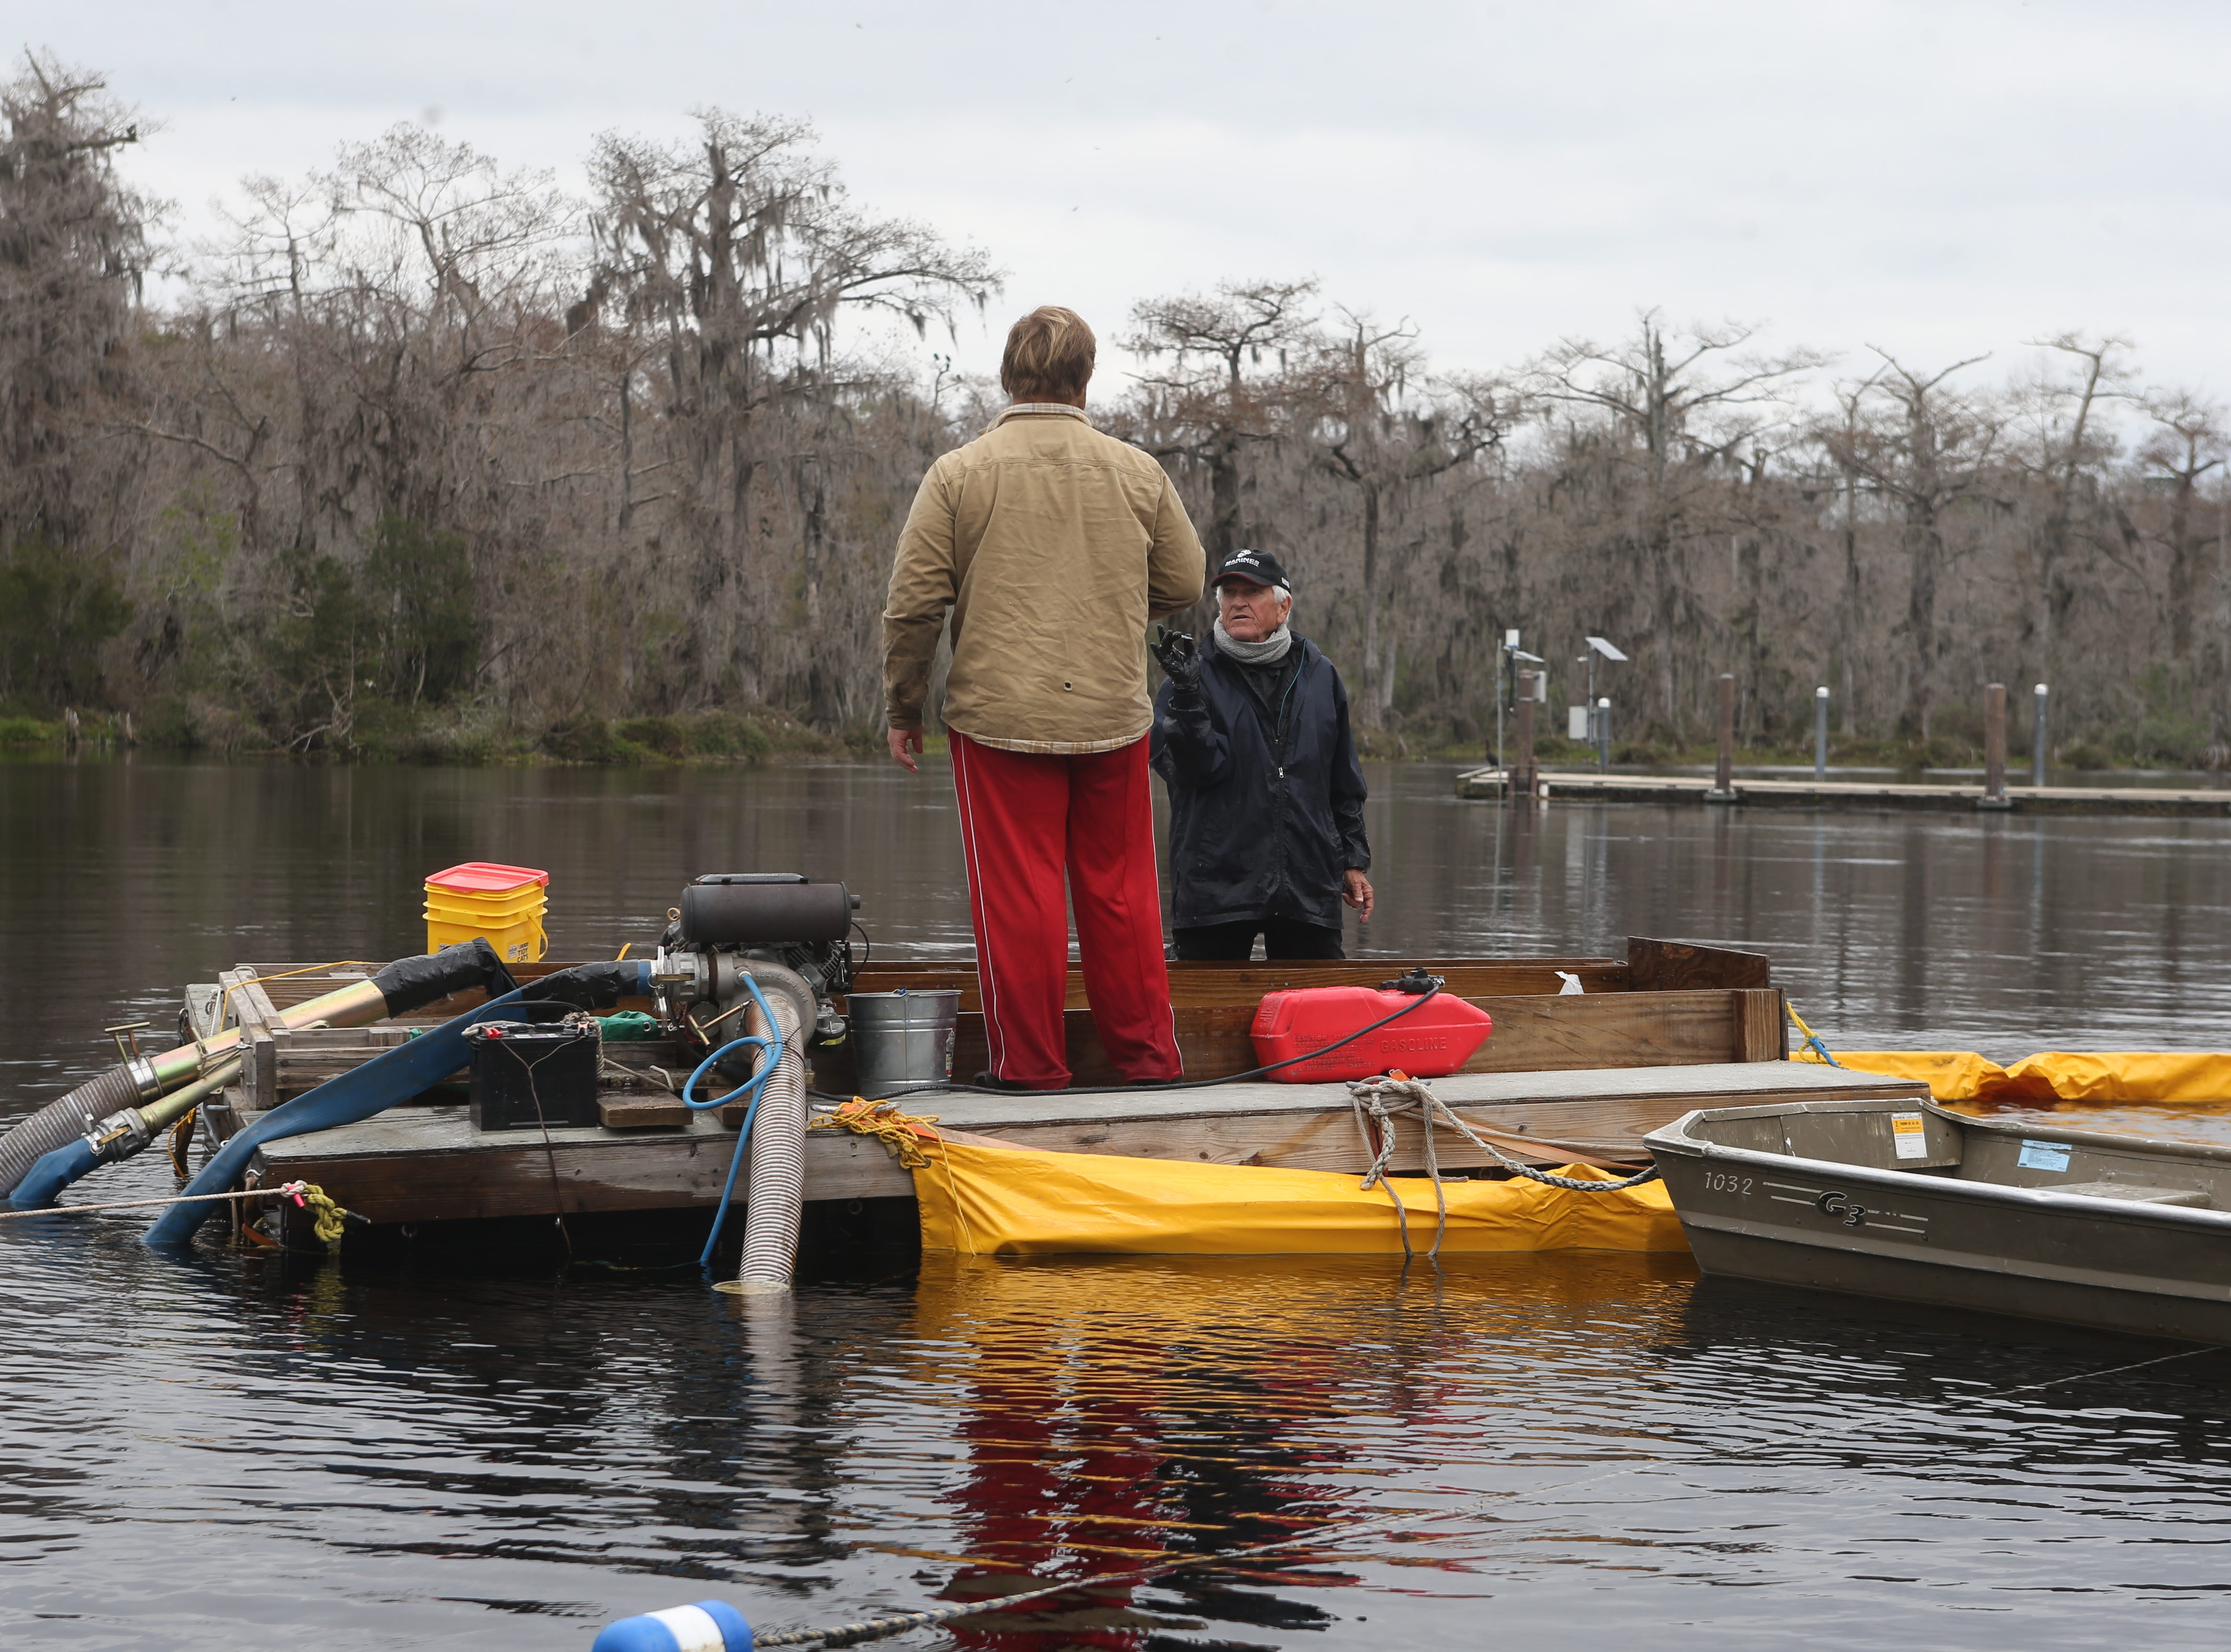 Binghamtom University masters student and volunteer Gavin Donathan, left and volunteer screener Ken Beattie look at an arrowhead brought up from the bottom of the Wakulla River by a dredge as researchers scuba dive to the bottom to observe the remains of a mastodon Monday, Jan. 14, 2019.